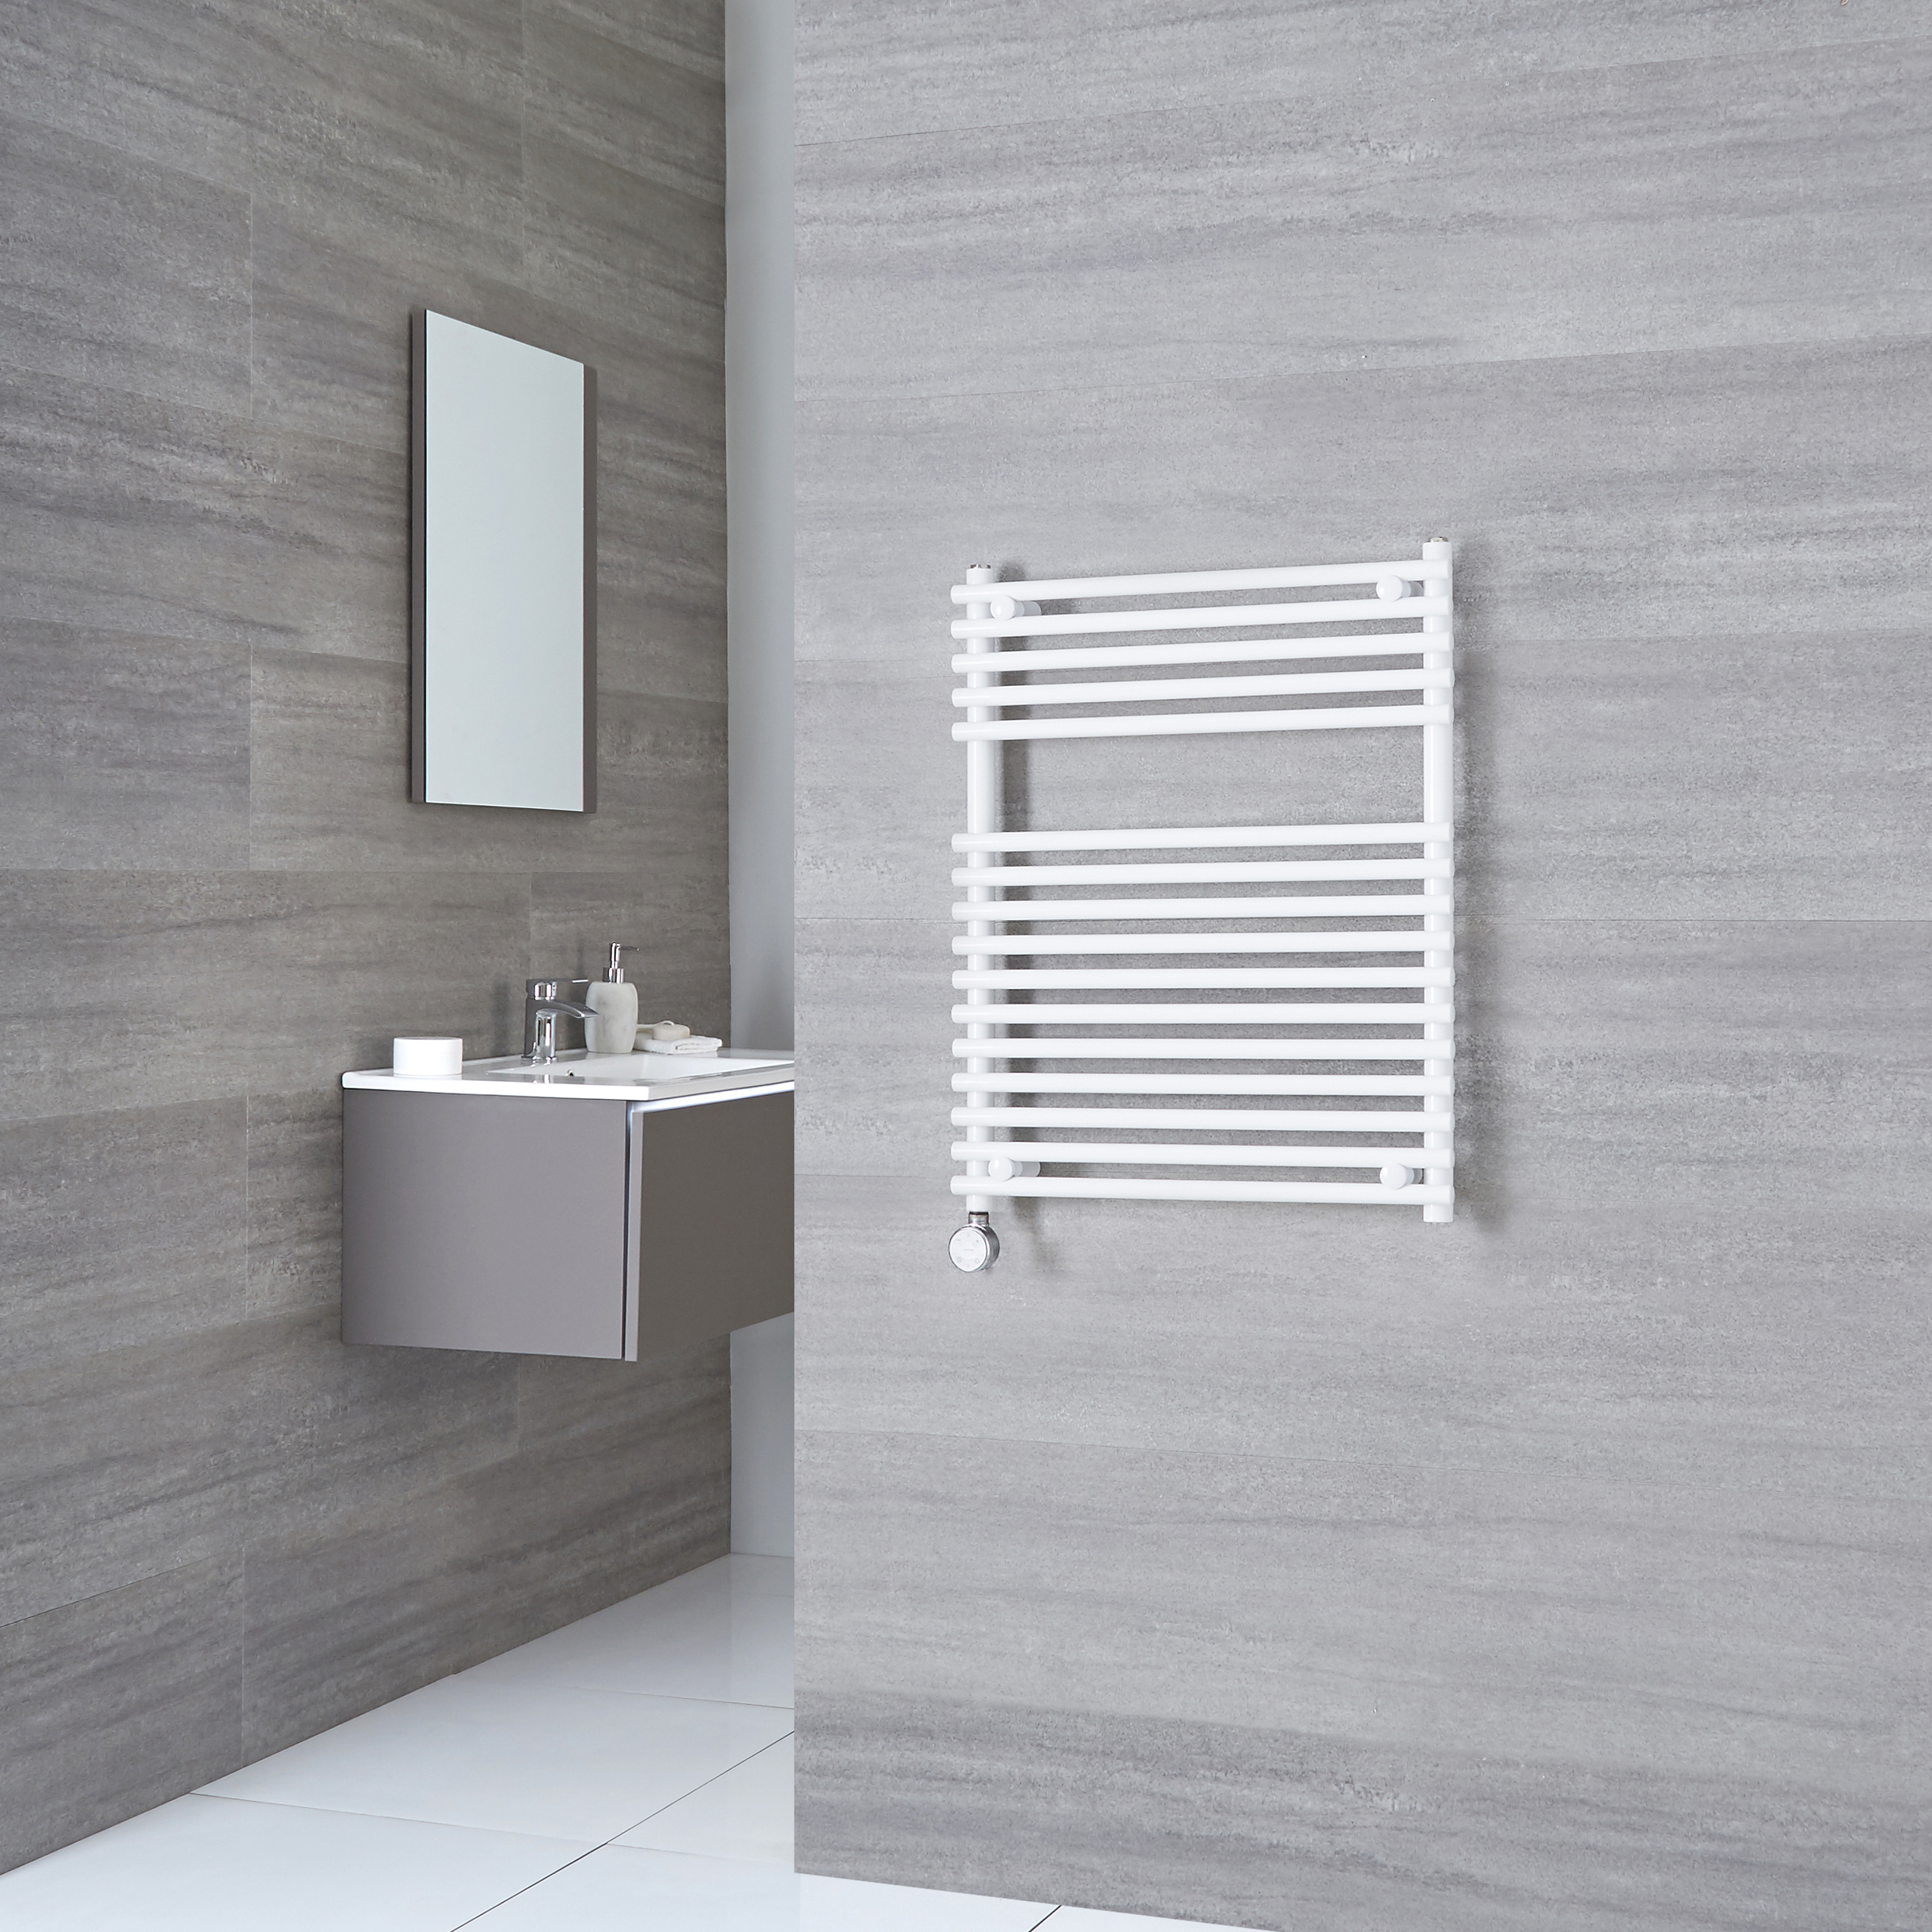 Kudox Electric - Flat White Bar on Bar Towel Rail 750mm x 600mm